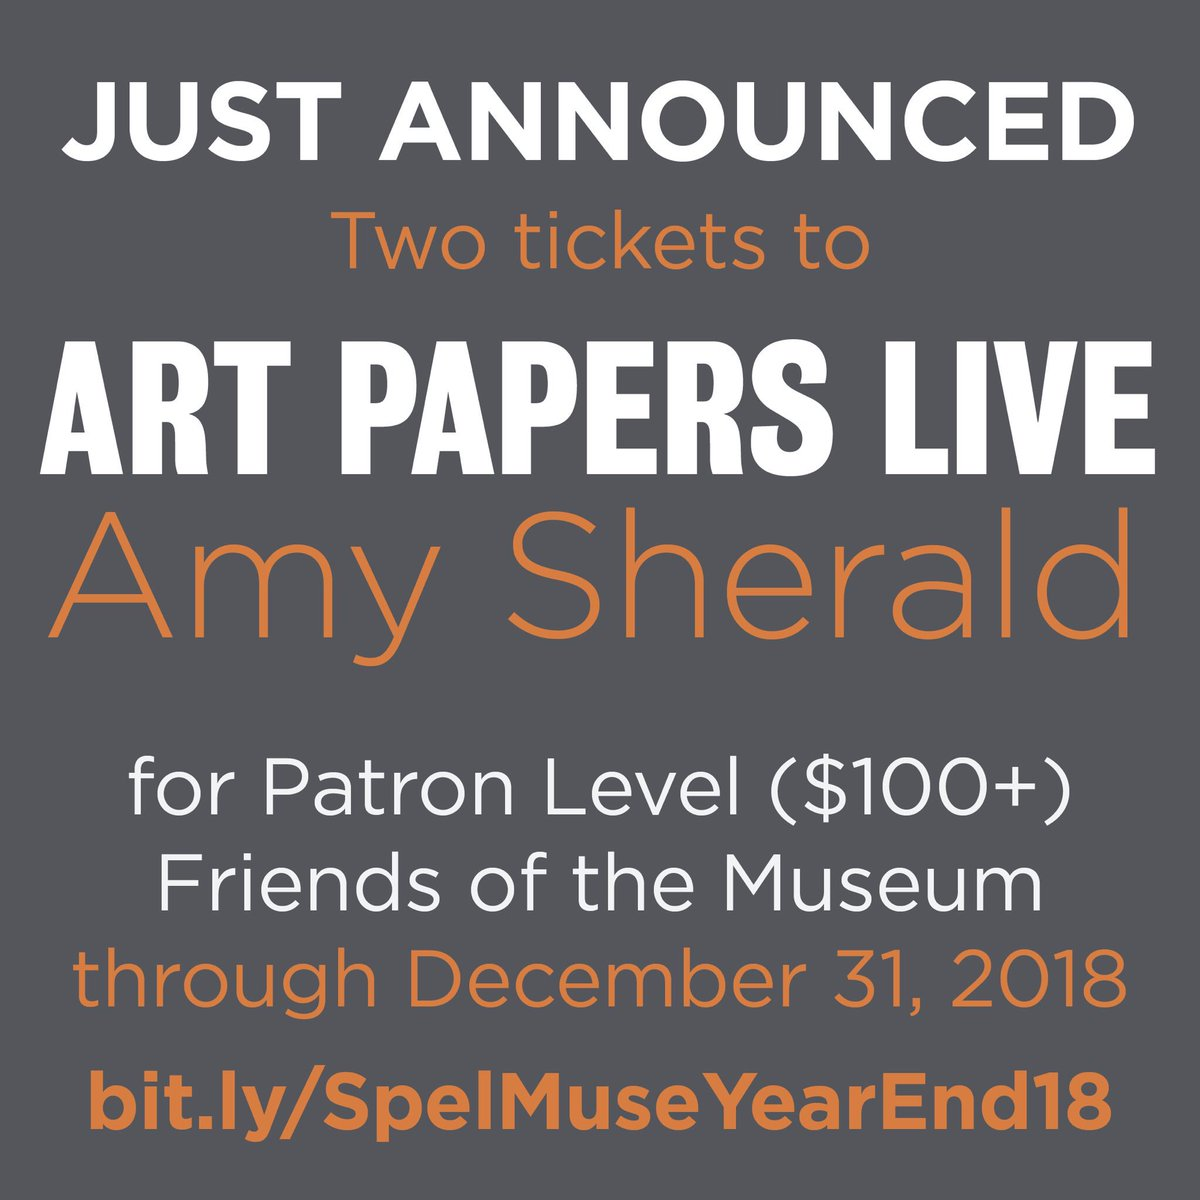 ICYMI: Become a Friend of the Museum at the $100 Patron Level by 12/31 and receive two reserved seats to Art Papers LIVE: Amy Sherald. Make your gift SOON!   http://bit.ly/SpelMuseYearEnd18…  #investspelmuse #spelmuse #art #fineart #womeninart #philanthropy  @artpapers @WaltonFamilyFdn